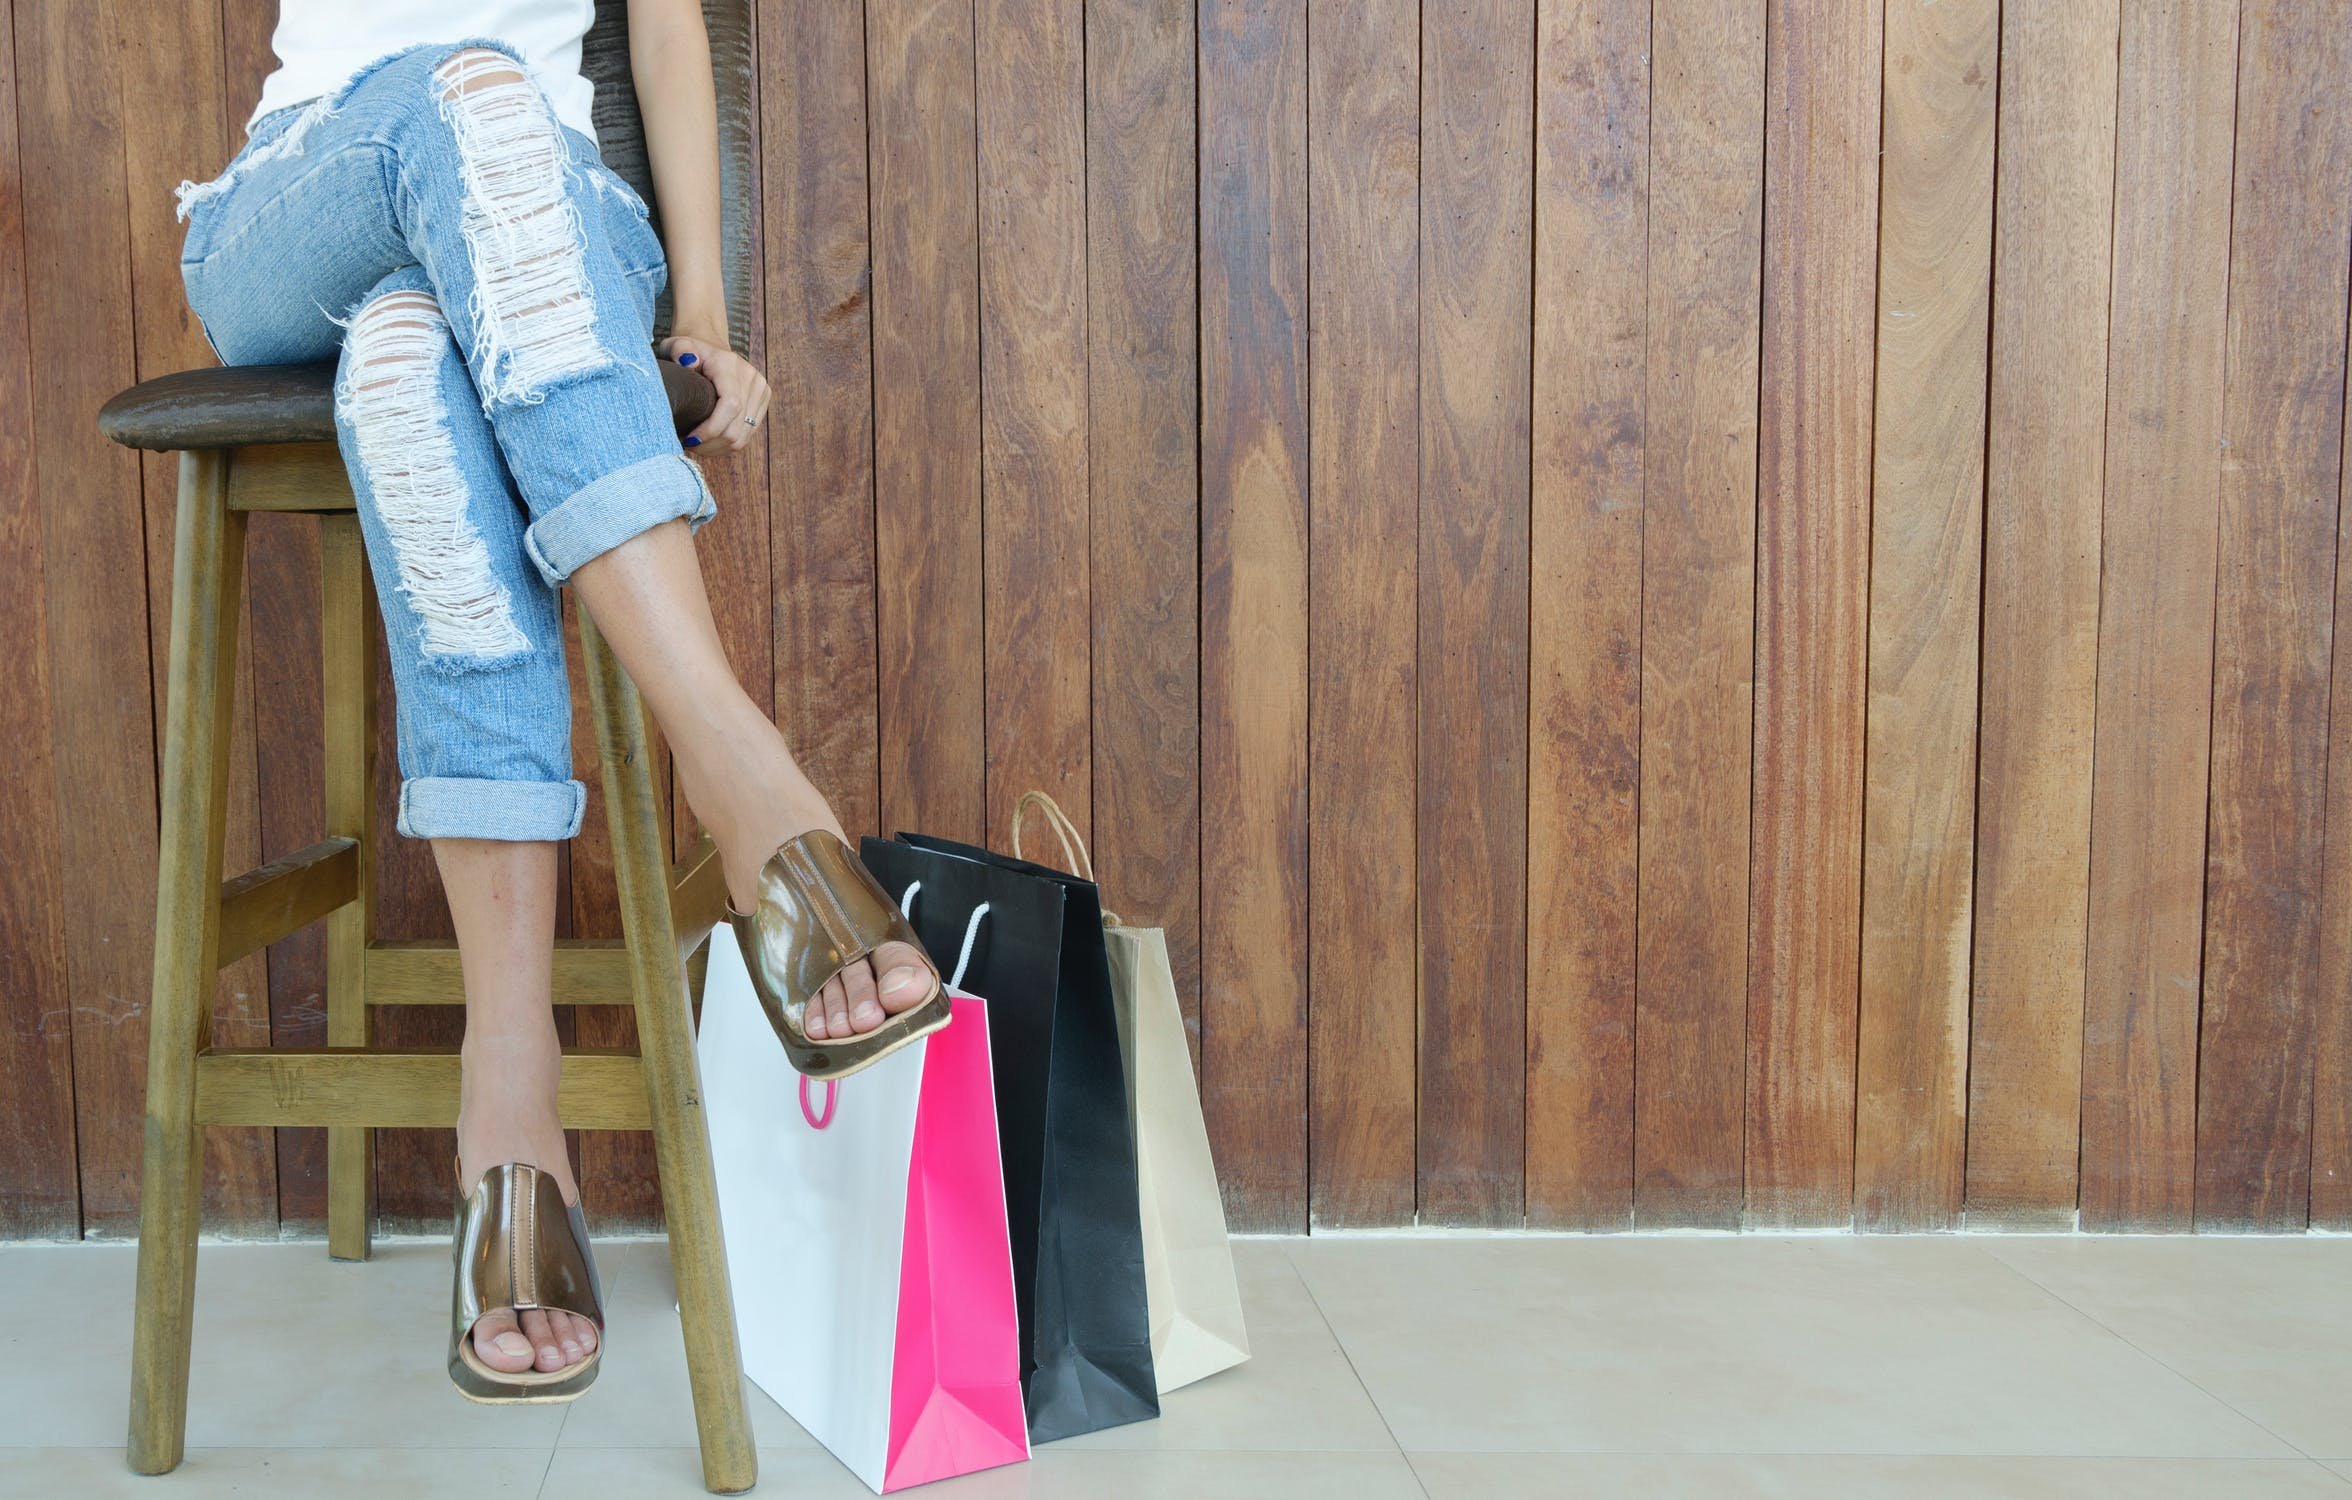 I threw out the dowdy old wardrobe that I'd bought to please Zack | Source: Pexels